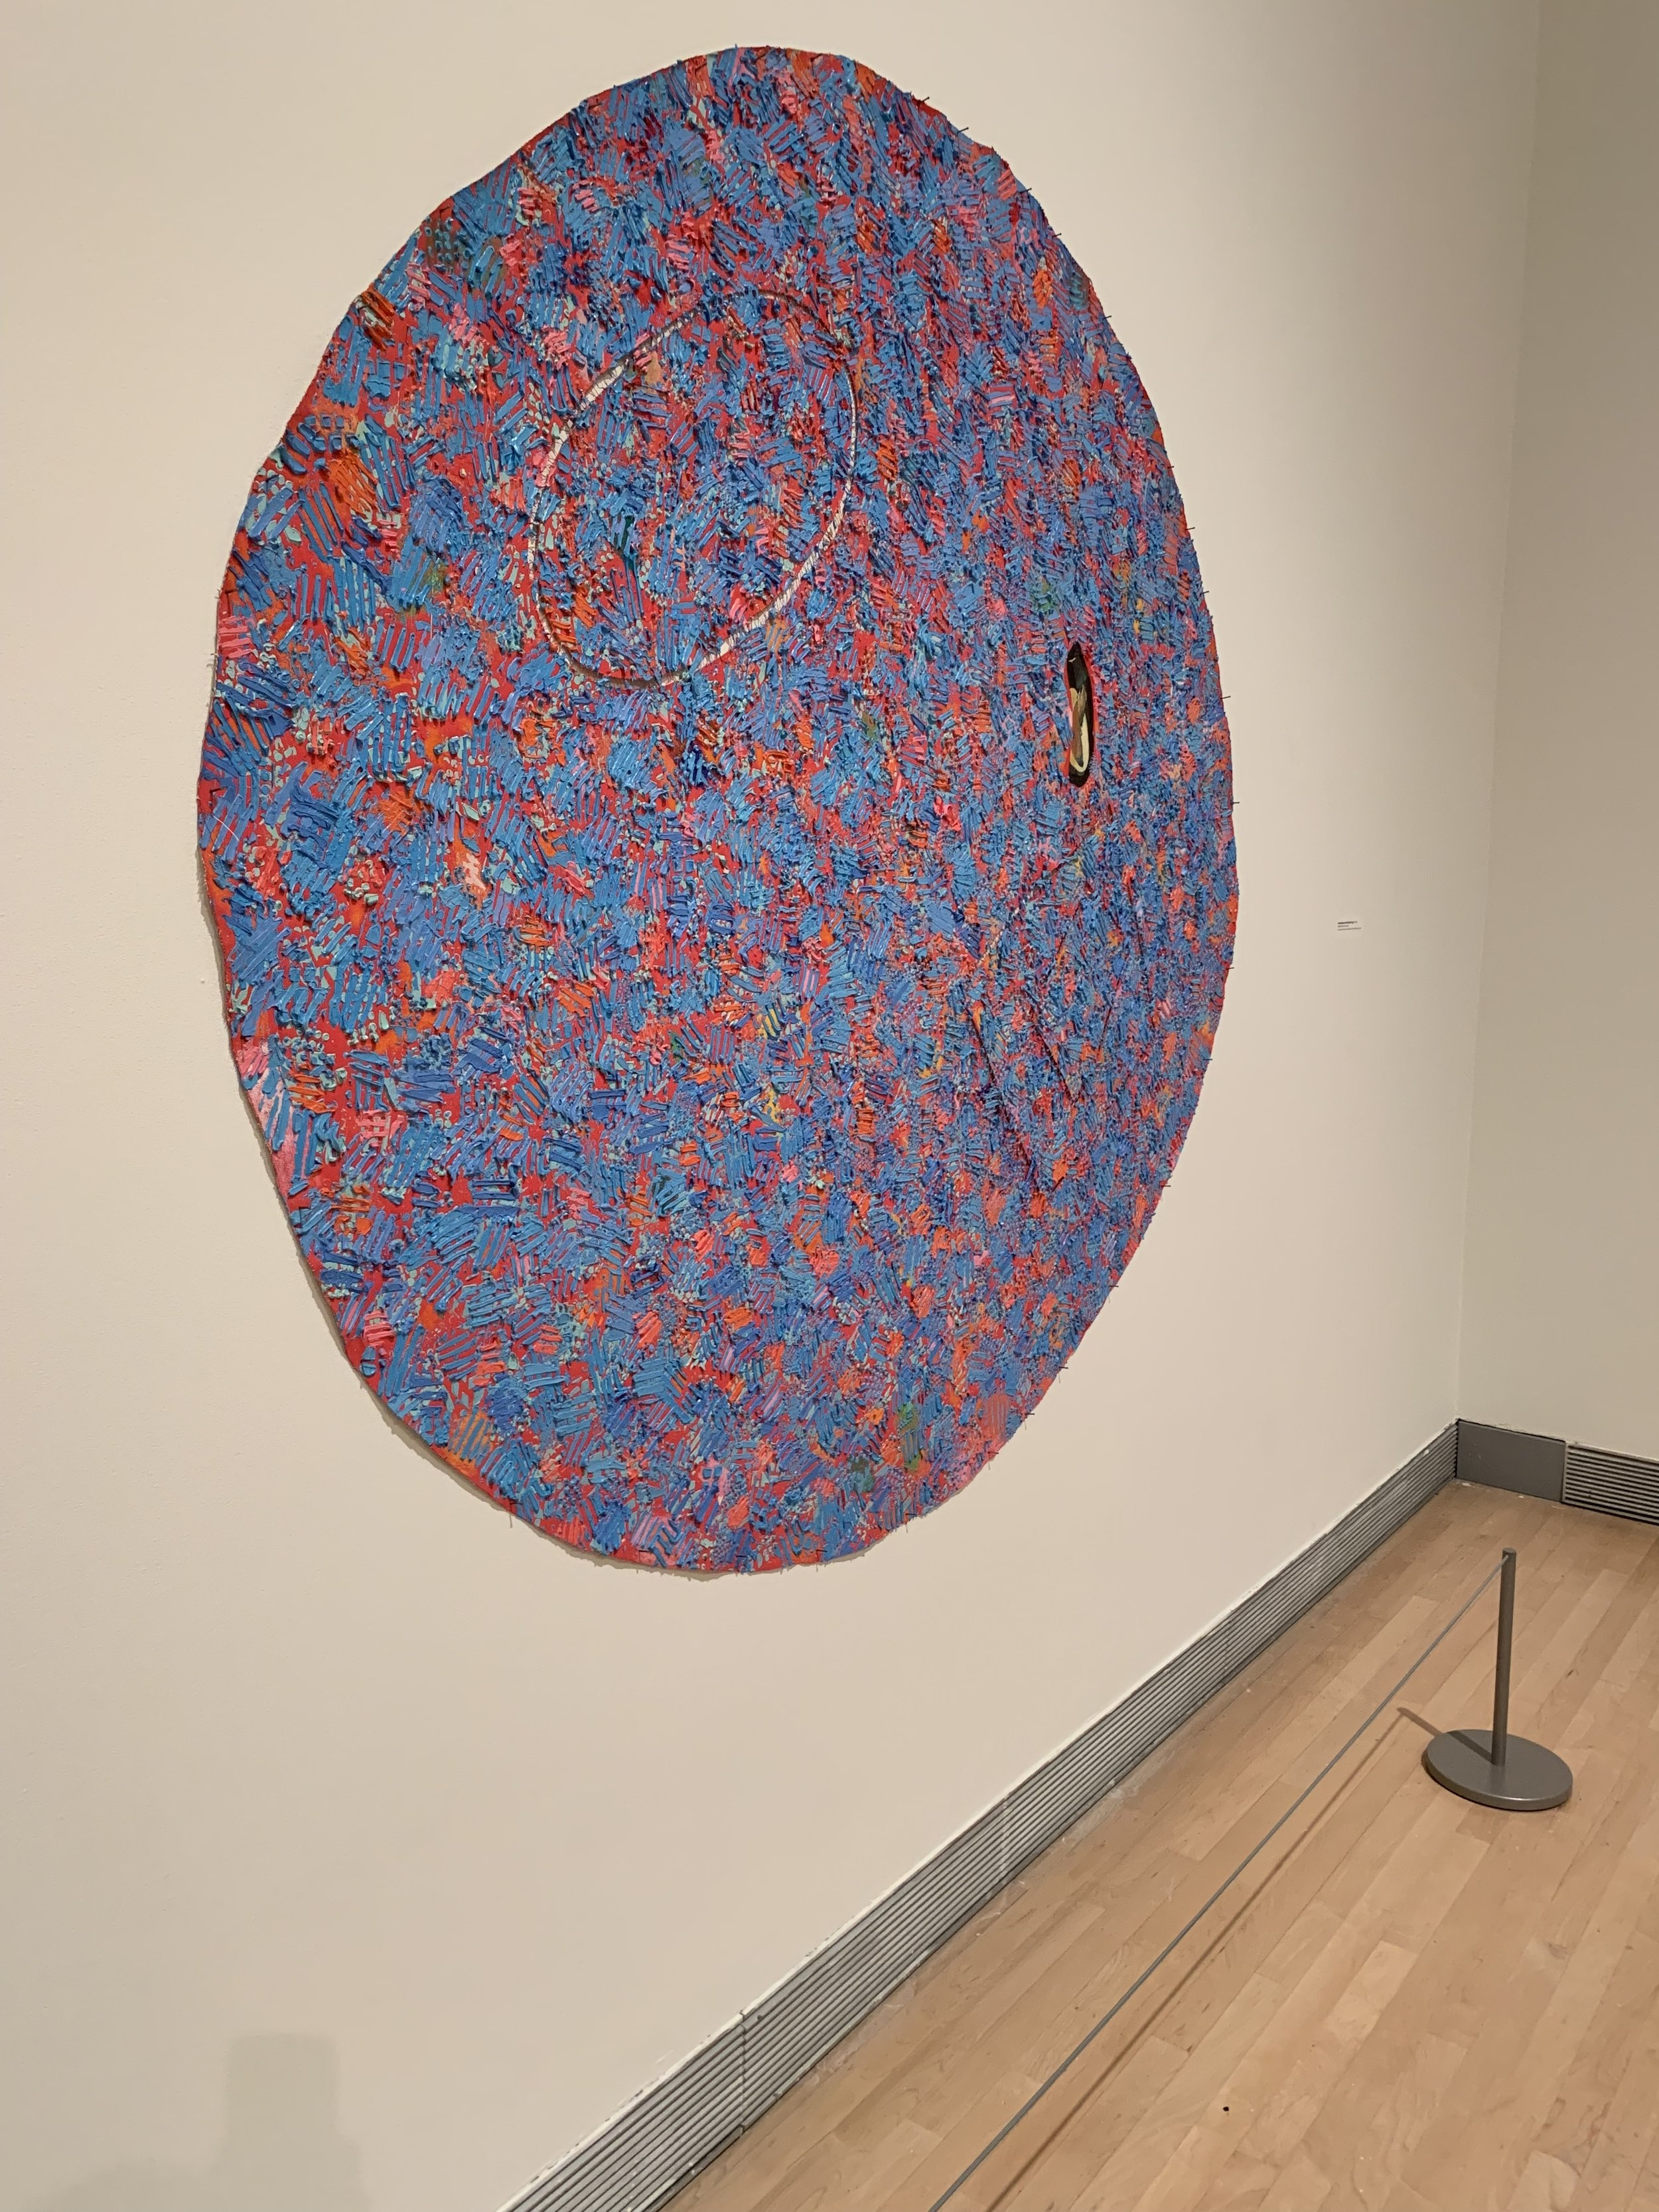 Howardena Pindell at the Rose Art Museum.